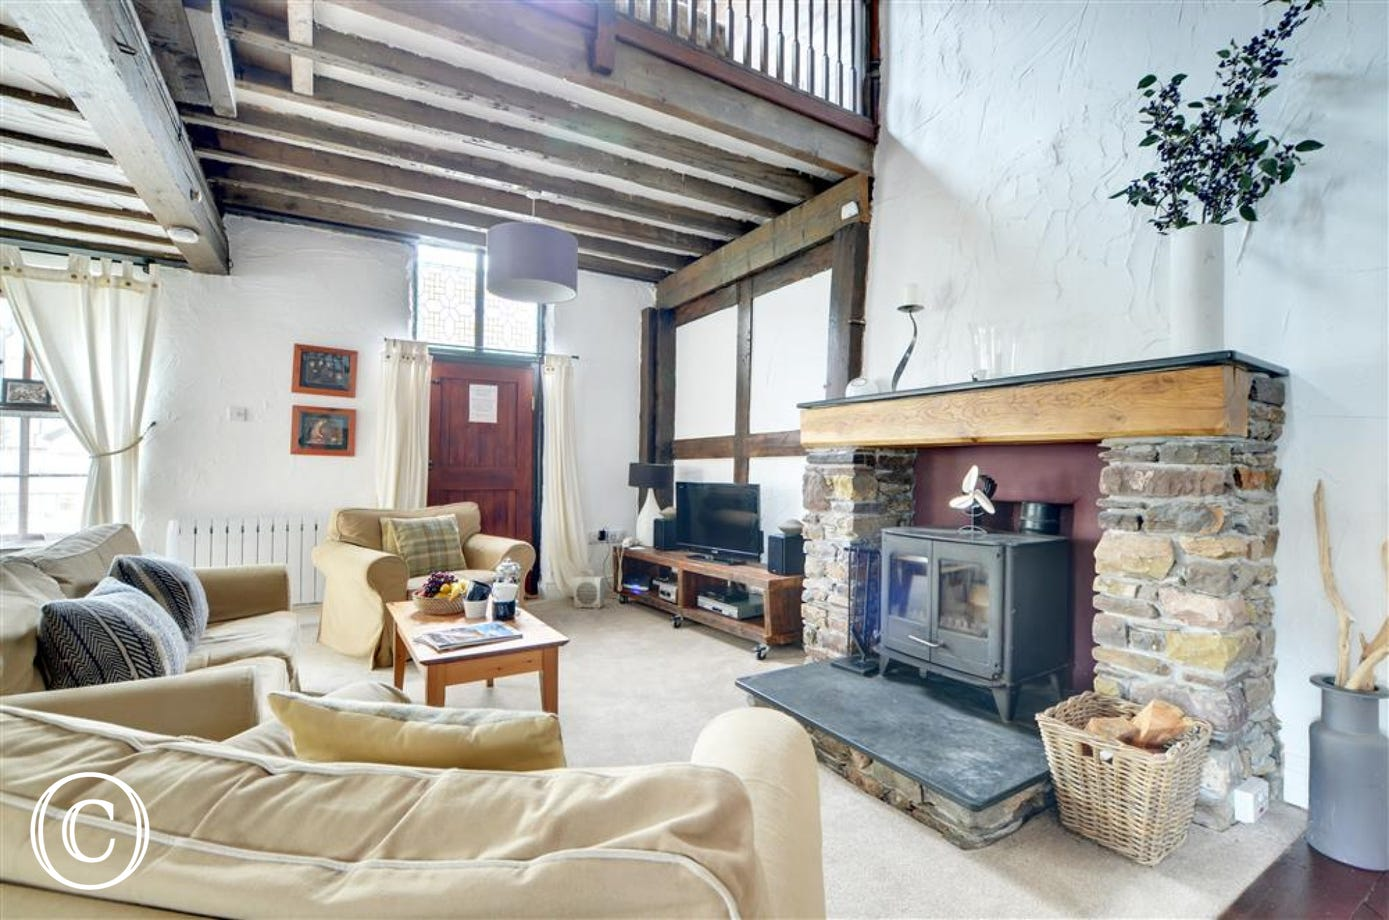 Lovely open plan space showing off all the traditional features, exposed beams, sloping ceiling and a wonderful fireplace with a log burner.